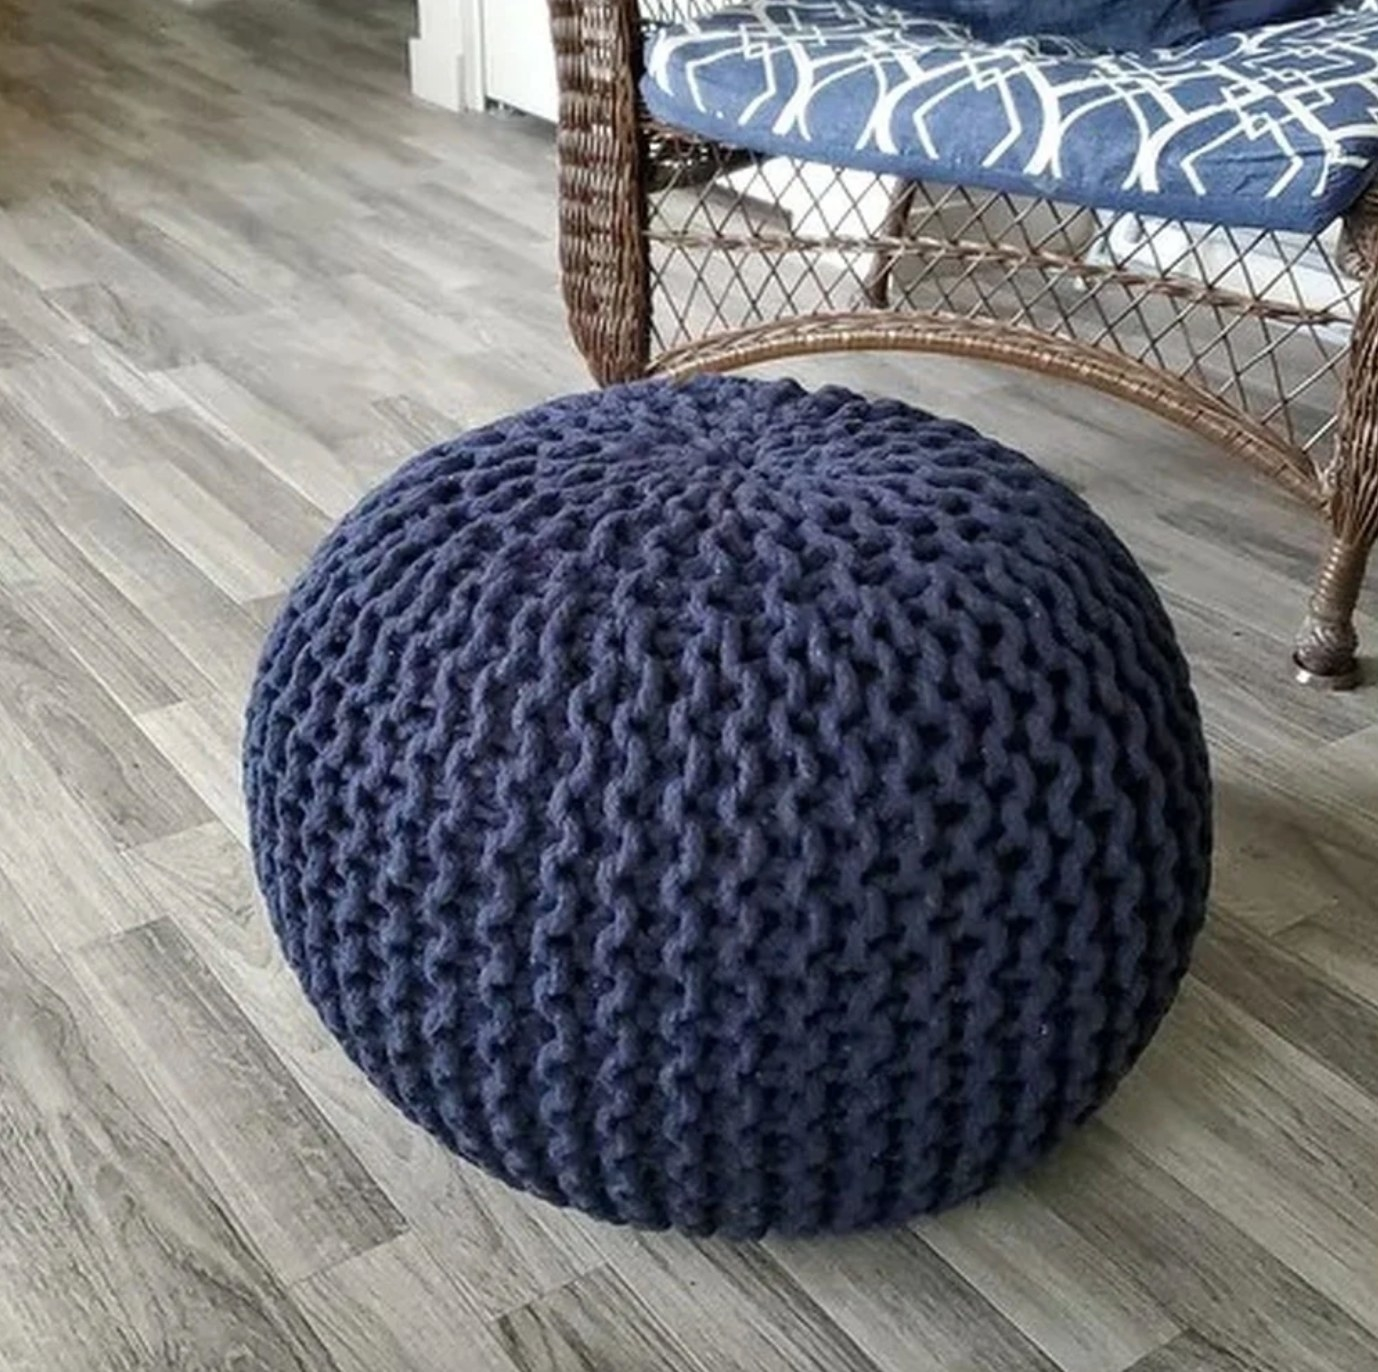 The knitted pouf ottoman in blue